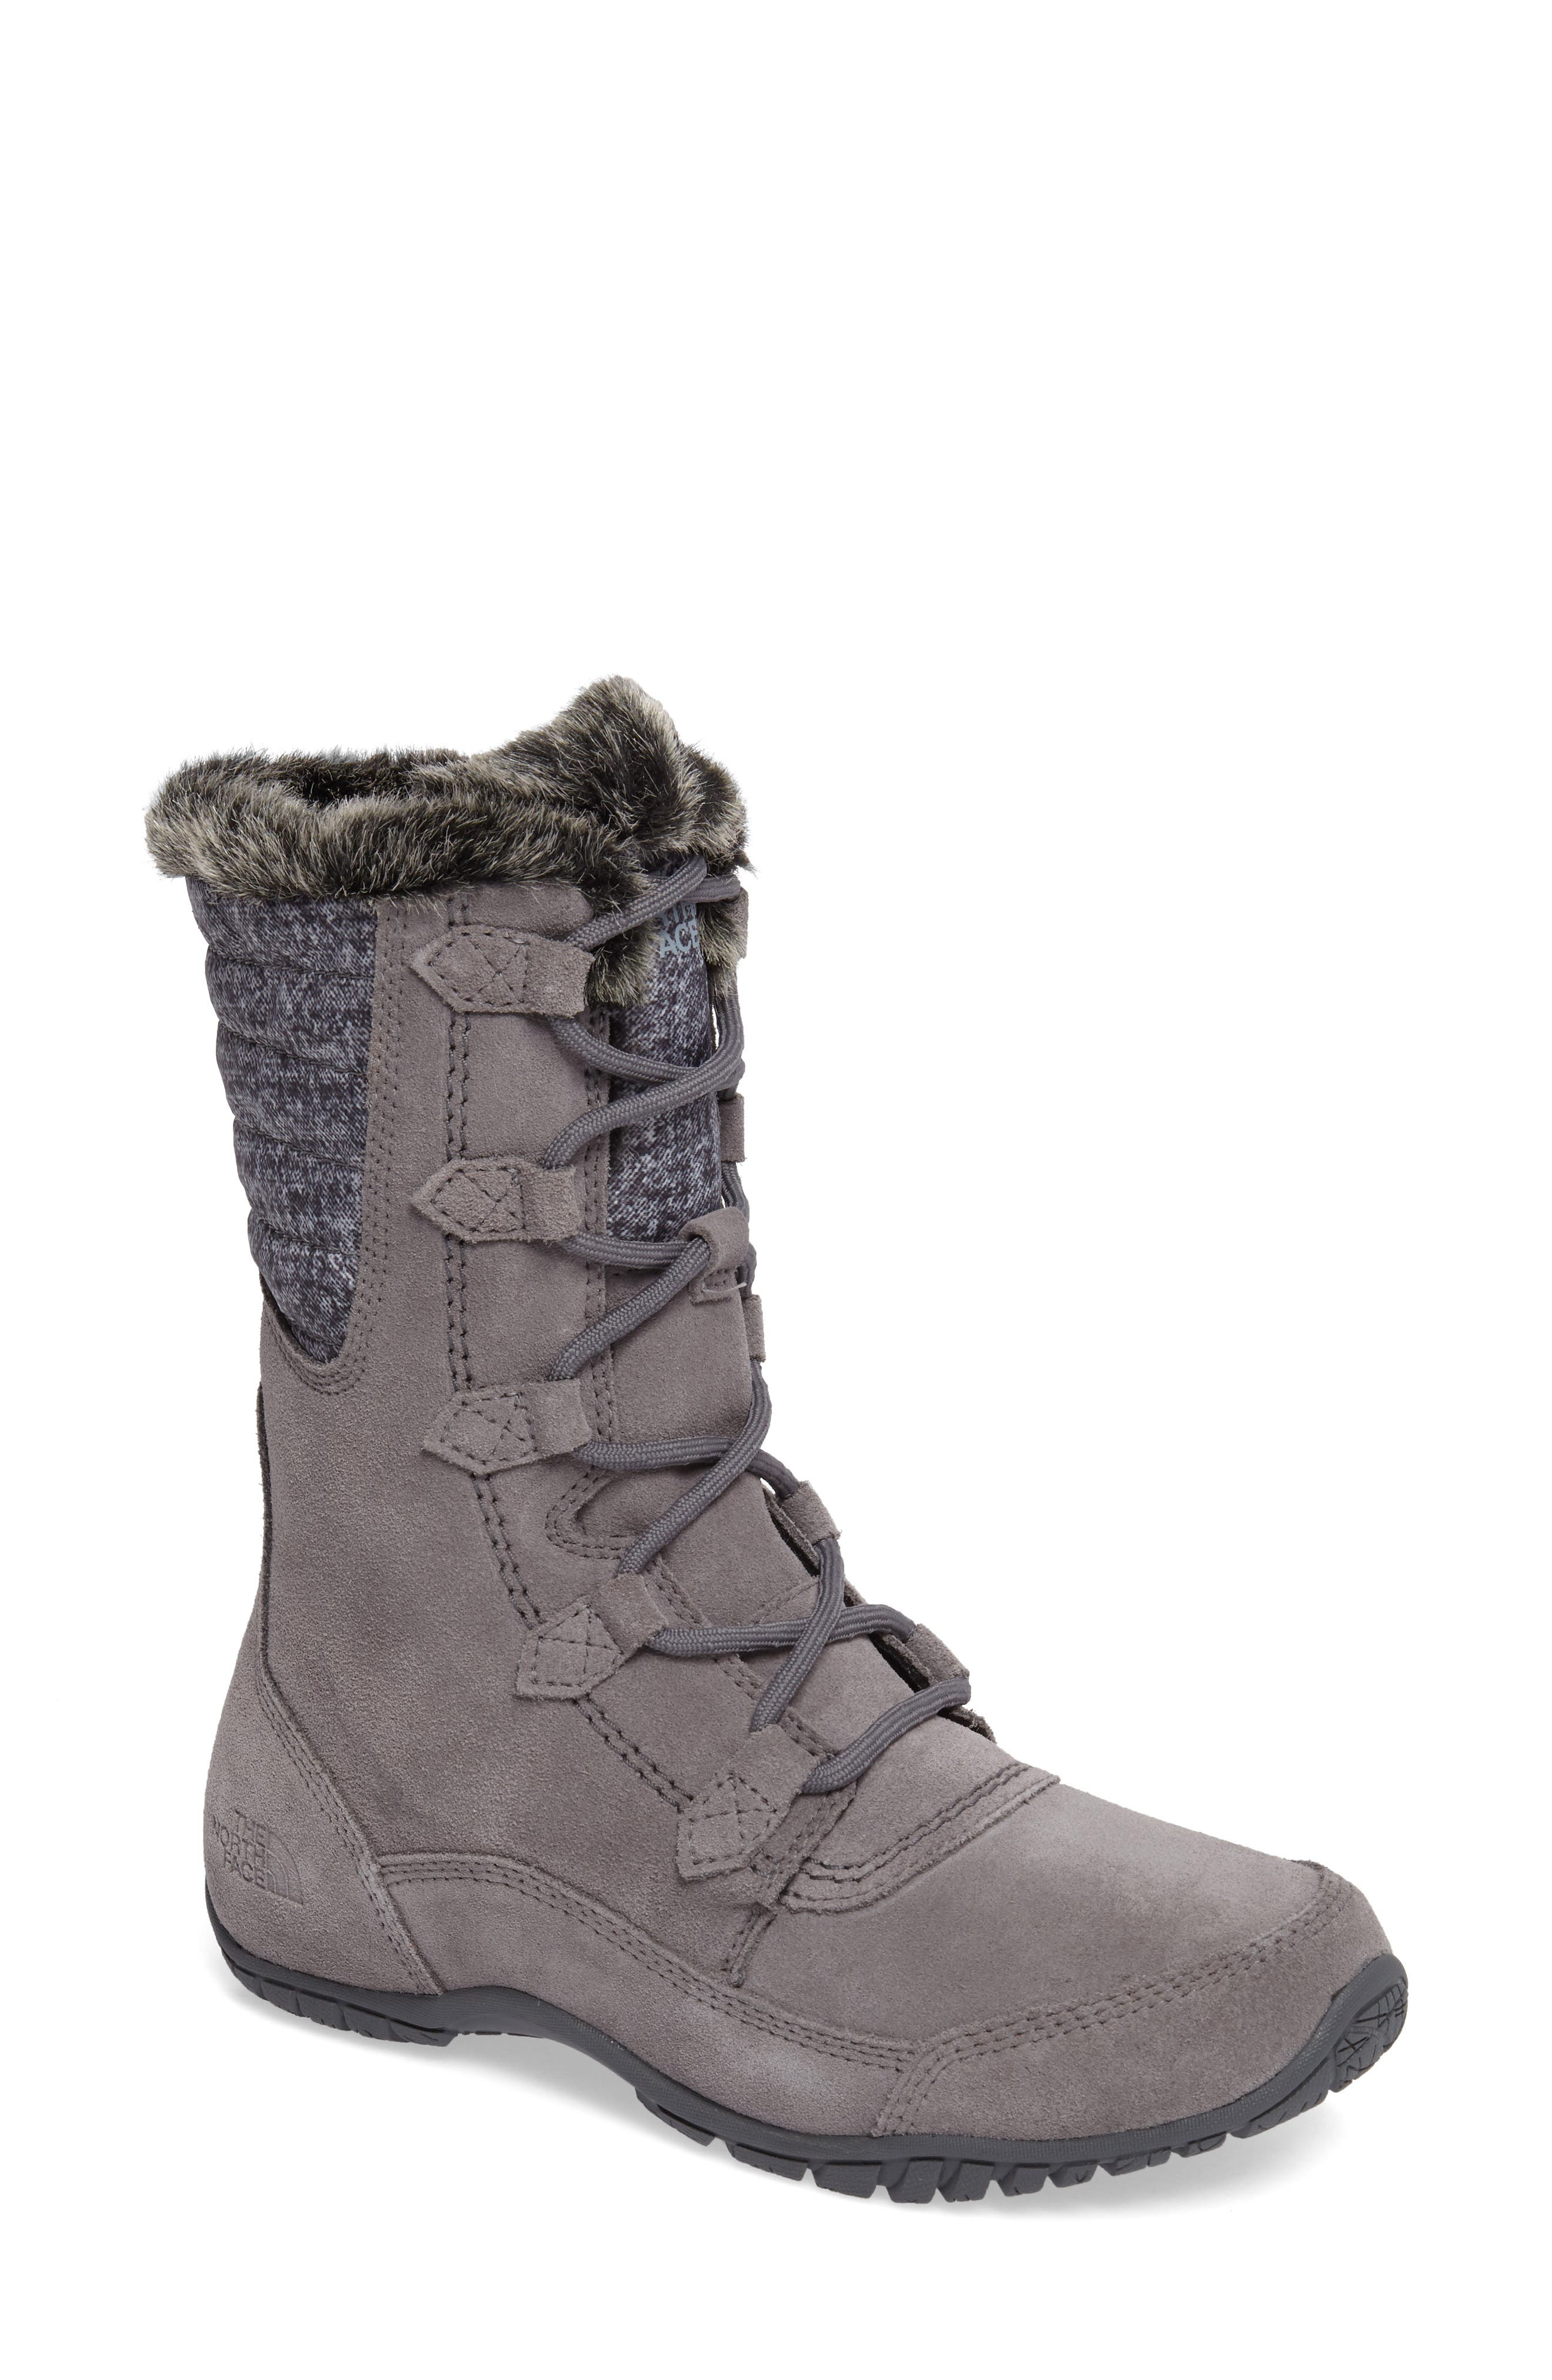 THE NORTH FACE Nuptse Purna II Waterproof PrimaLoft<sup>®</sup> Silver Eco Insulated Winter Boot